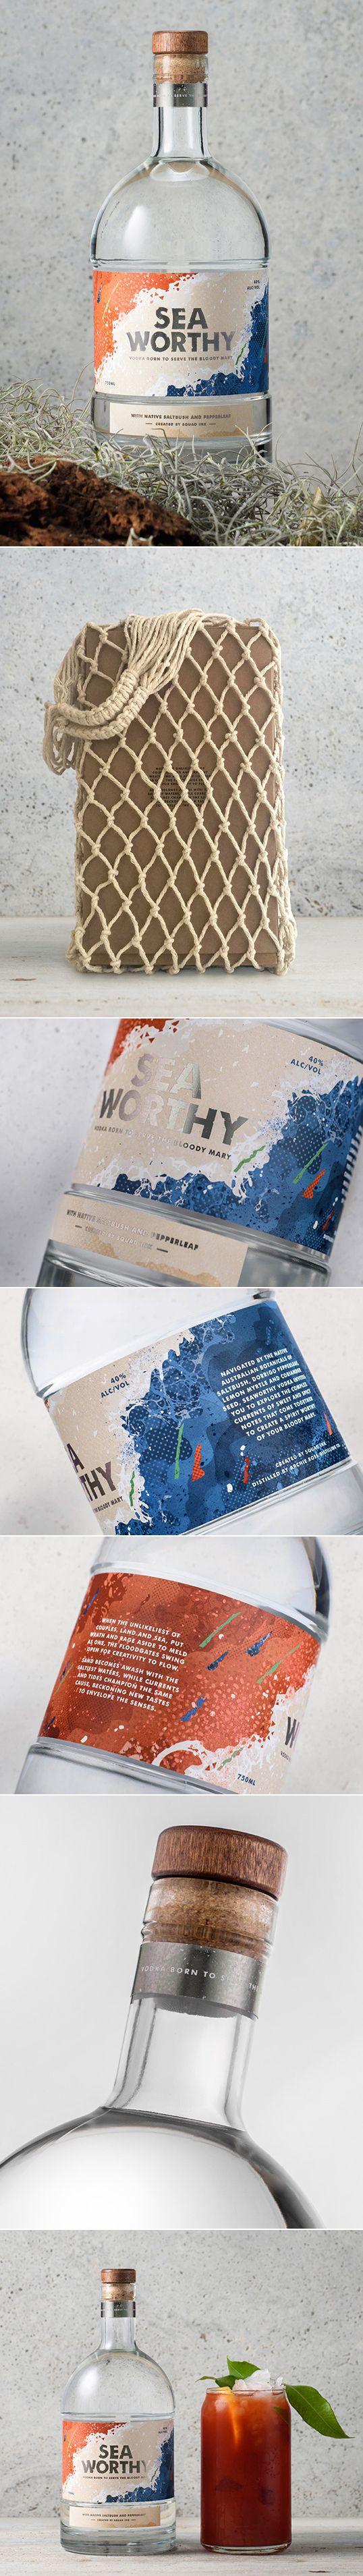 Lovely Package - Seaworthy Vodka